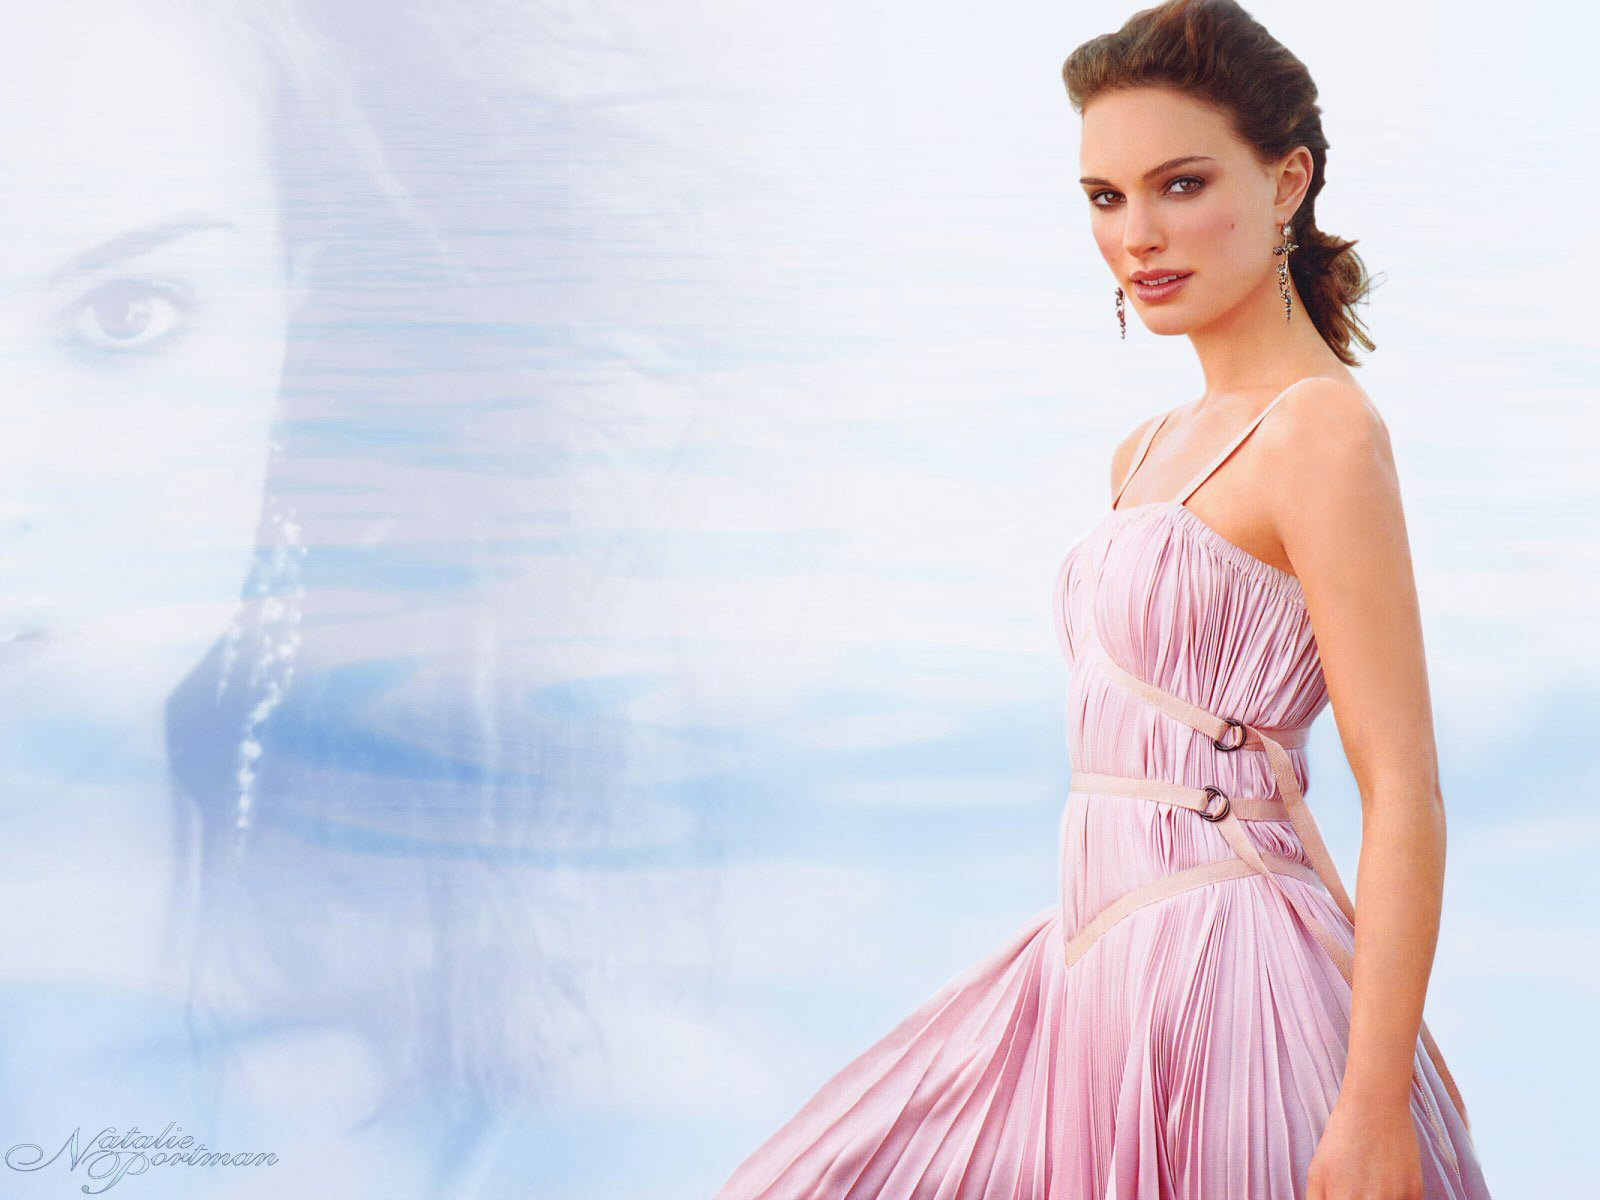 Natalie Portman Hd Wallpaper: Photos Celebrity: Natalie Portman HD Wallpapers